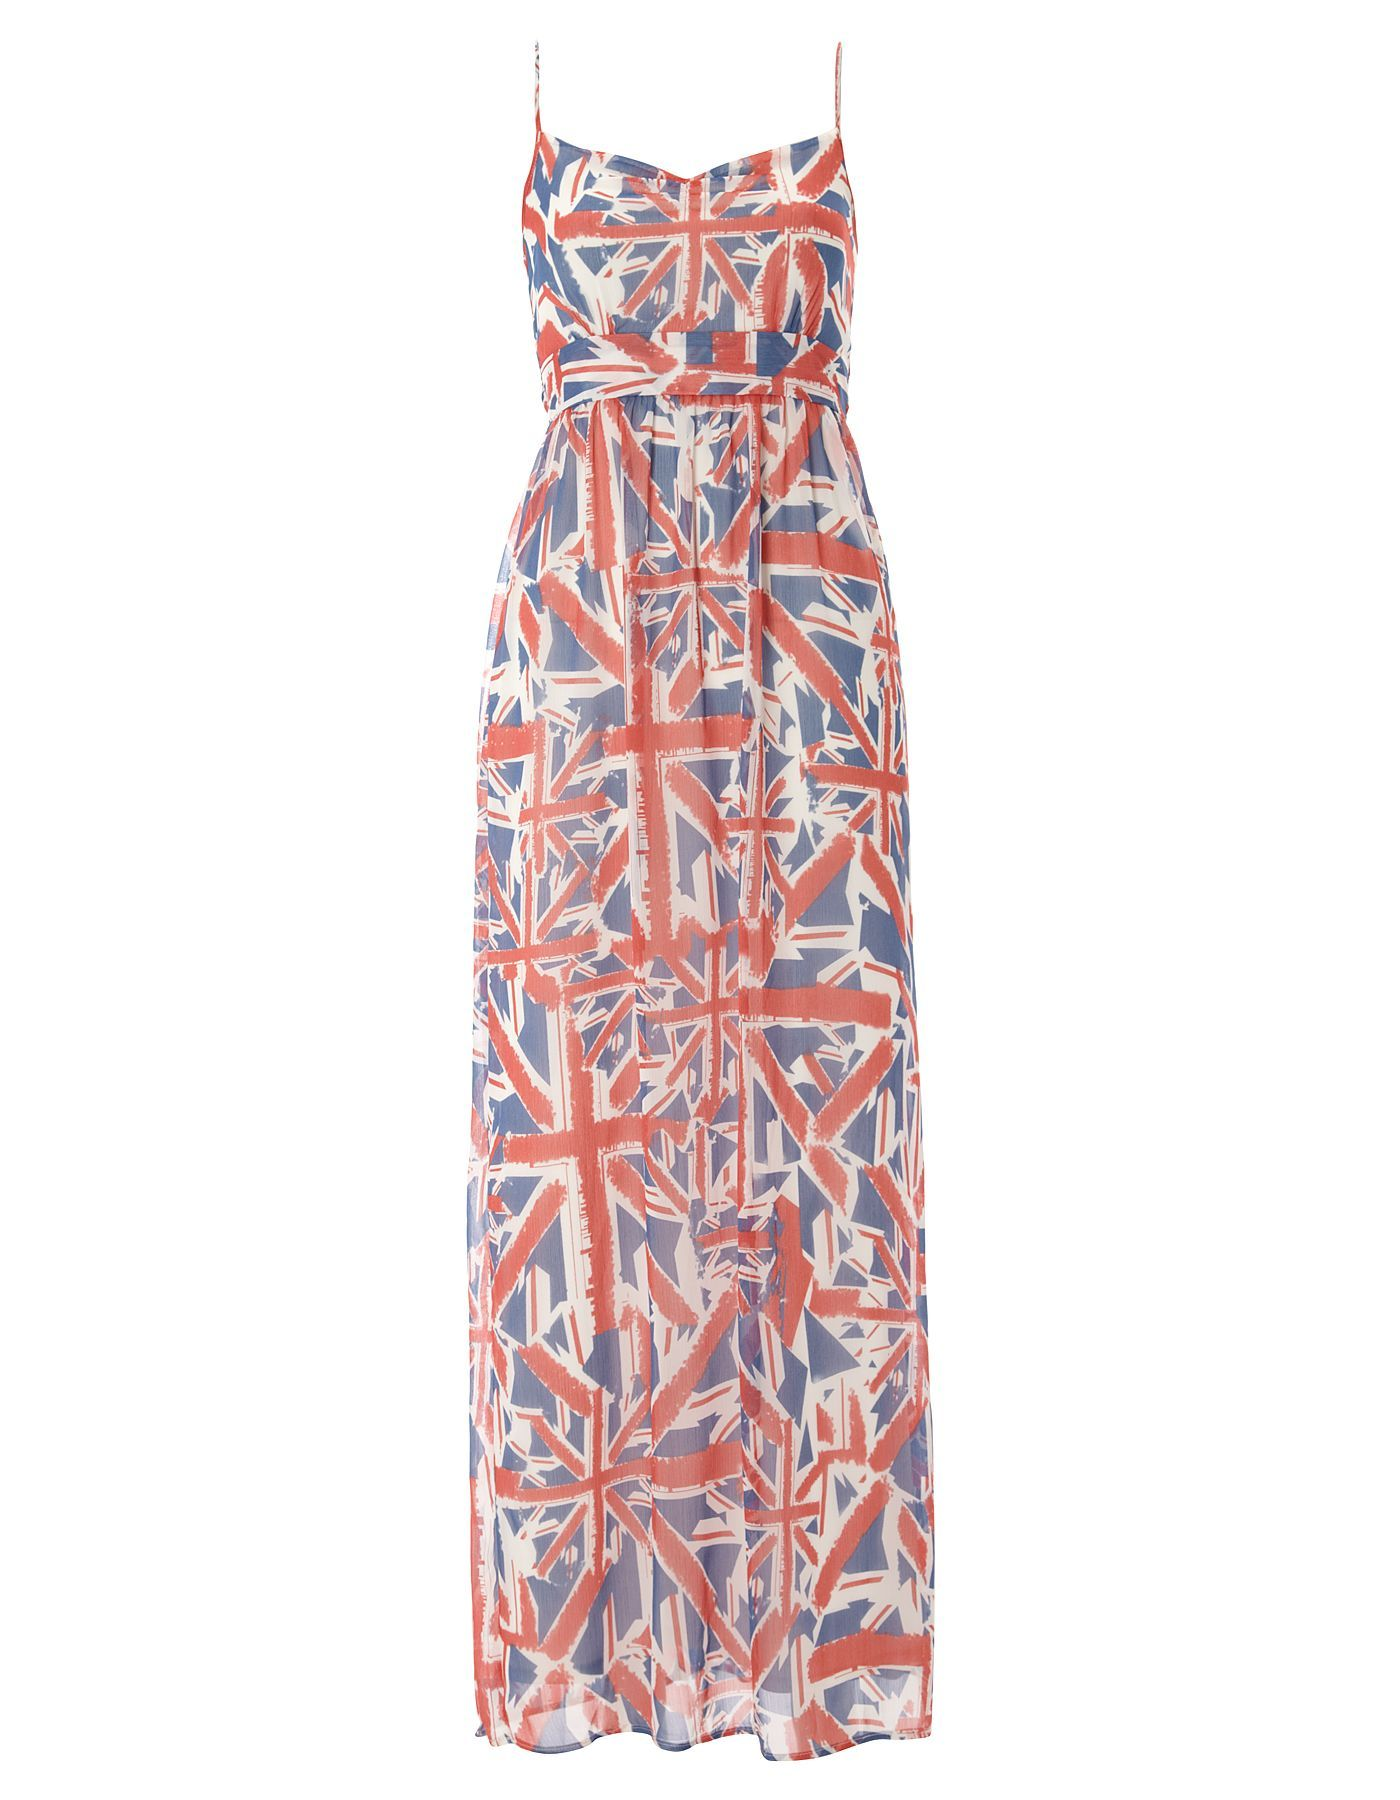 1a346ba59e Union Jack Print Dress - feeling patriotic - just bought this today ...